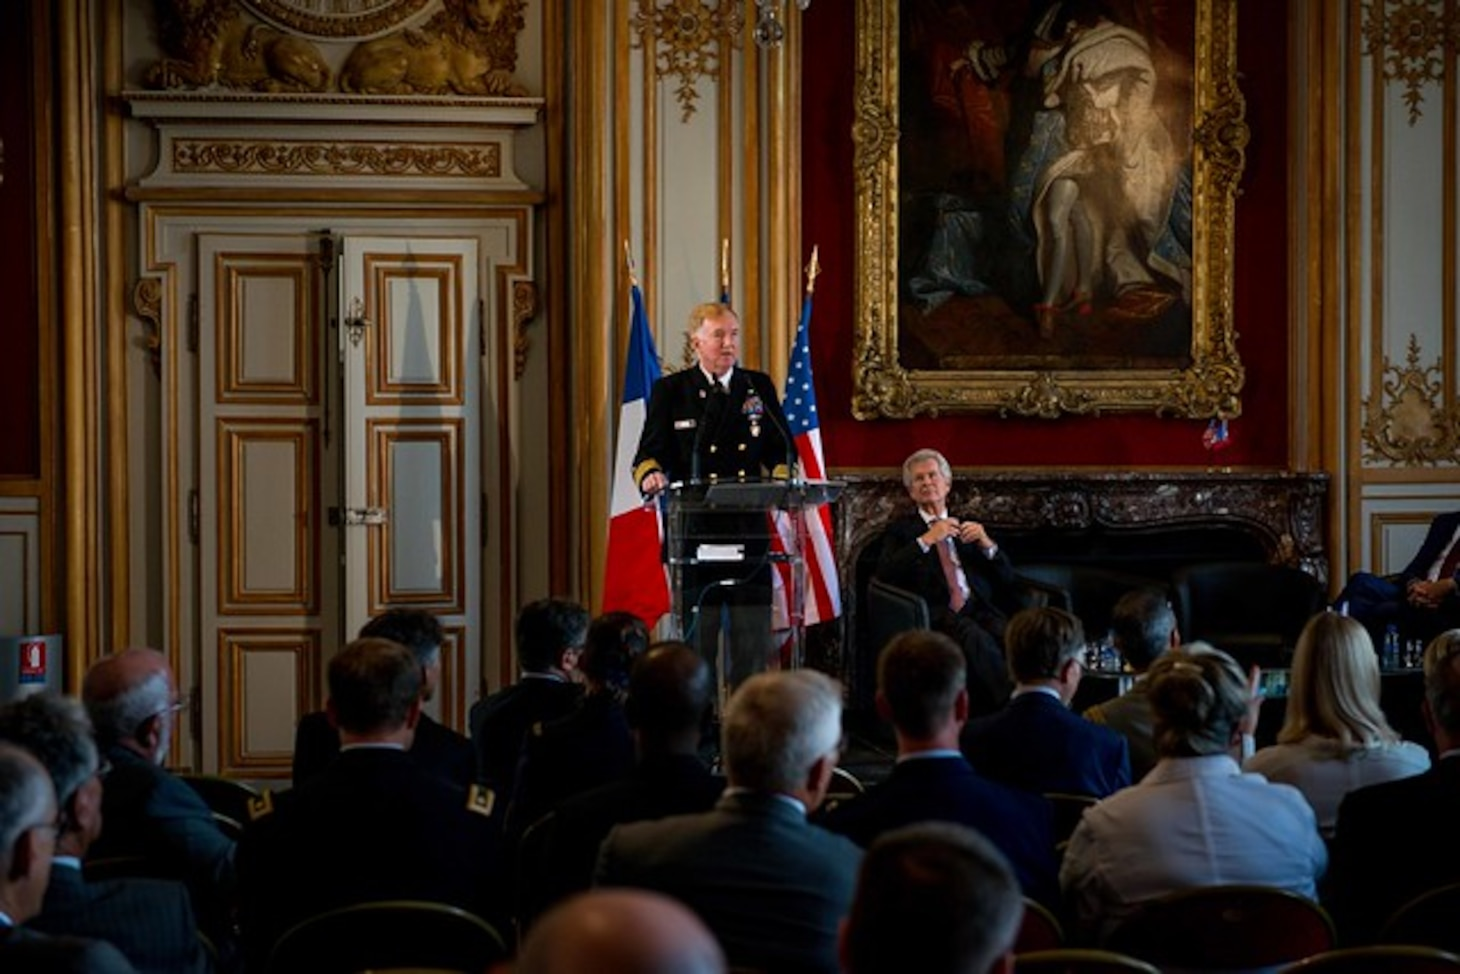 Europe's Top Admiral Highlights French-American Alliance in Paris